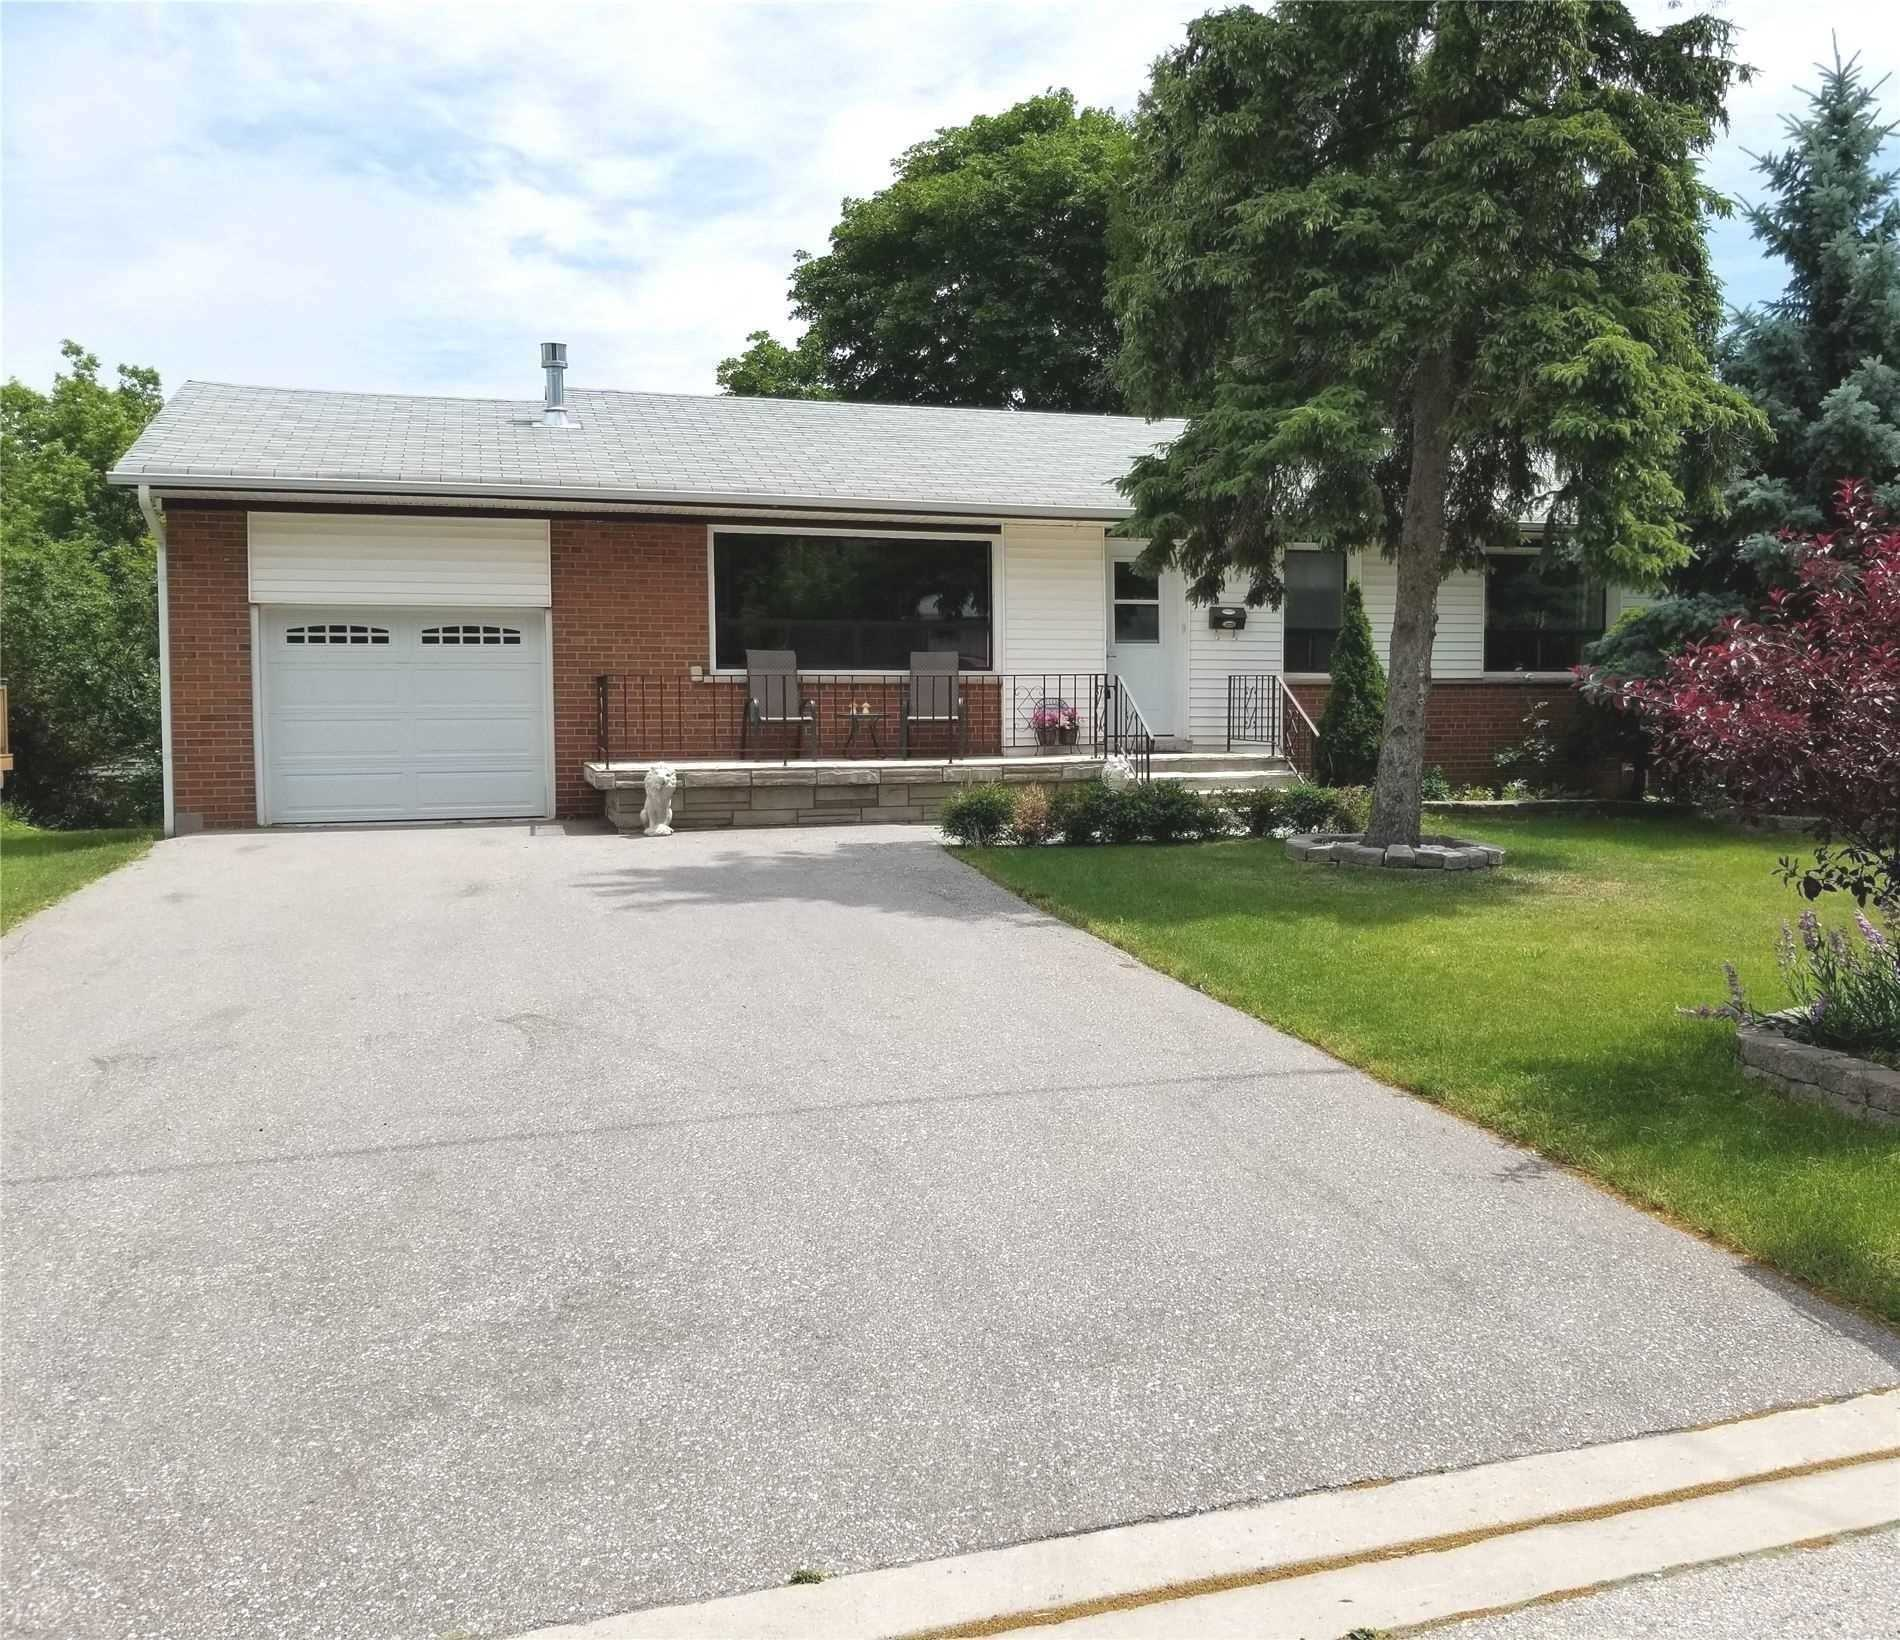 17 Pioneer Dr, Mississauga